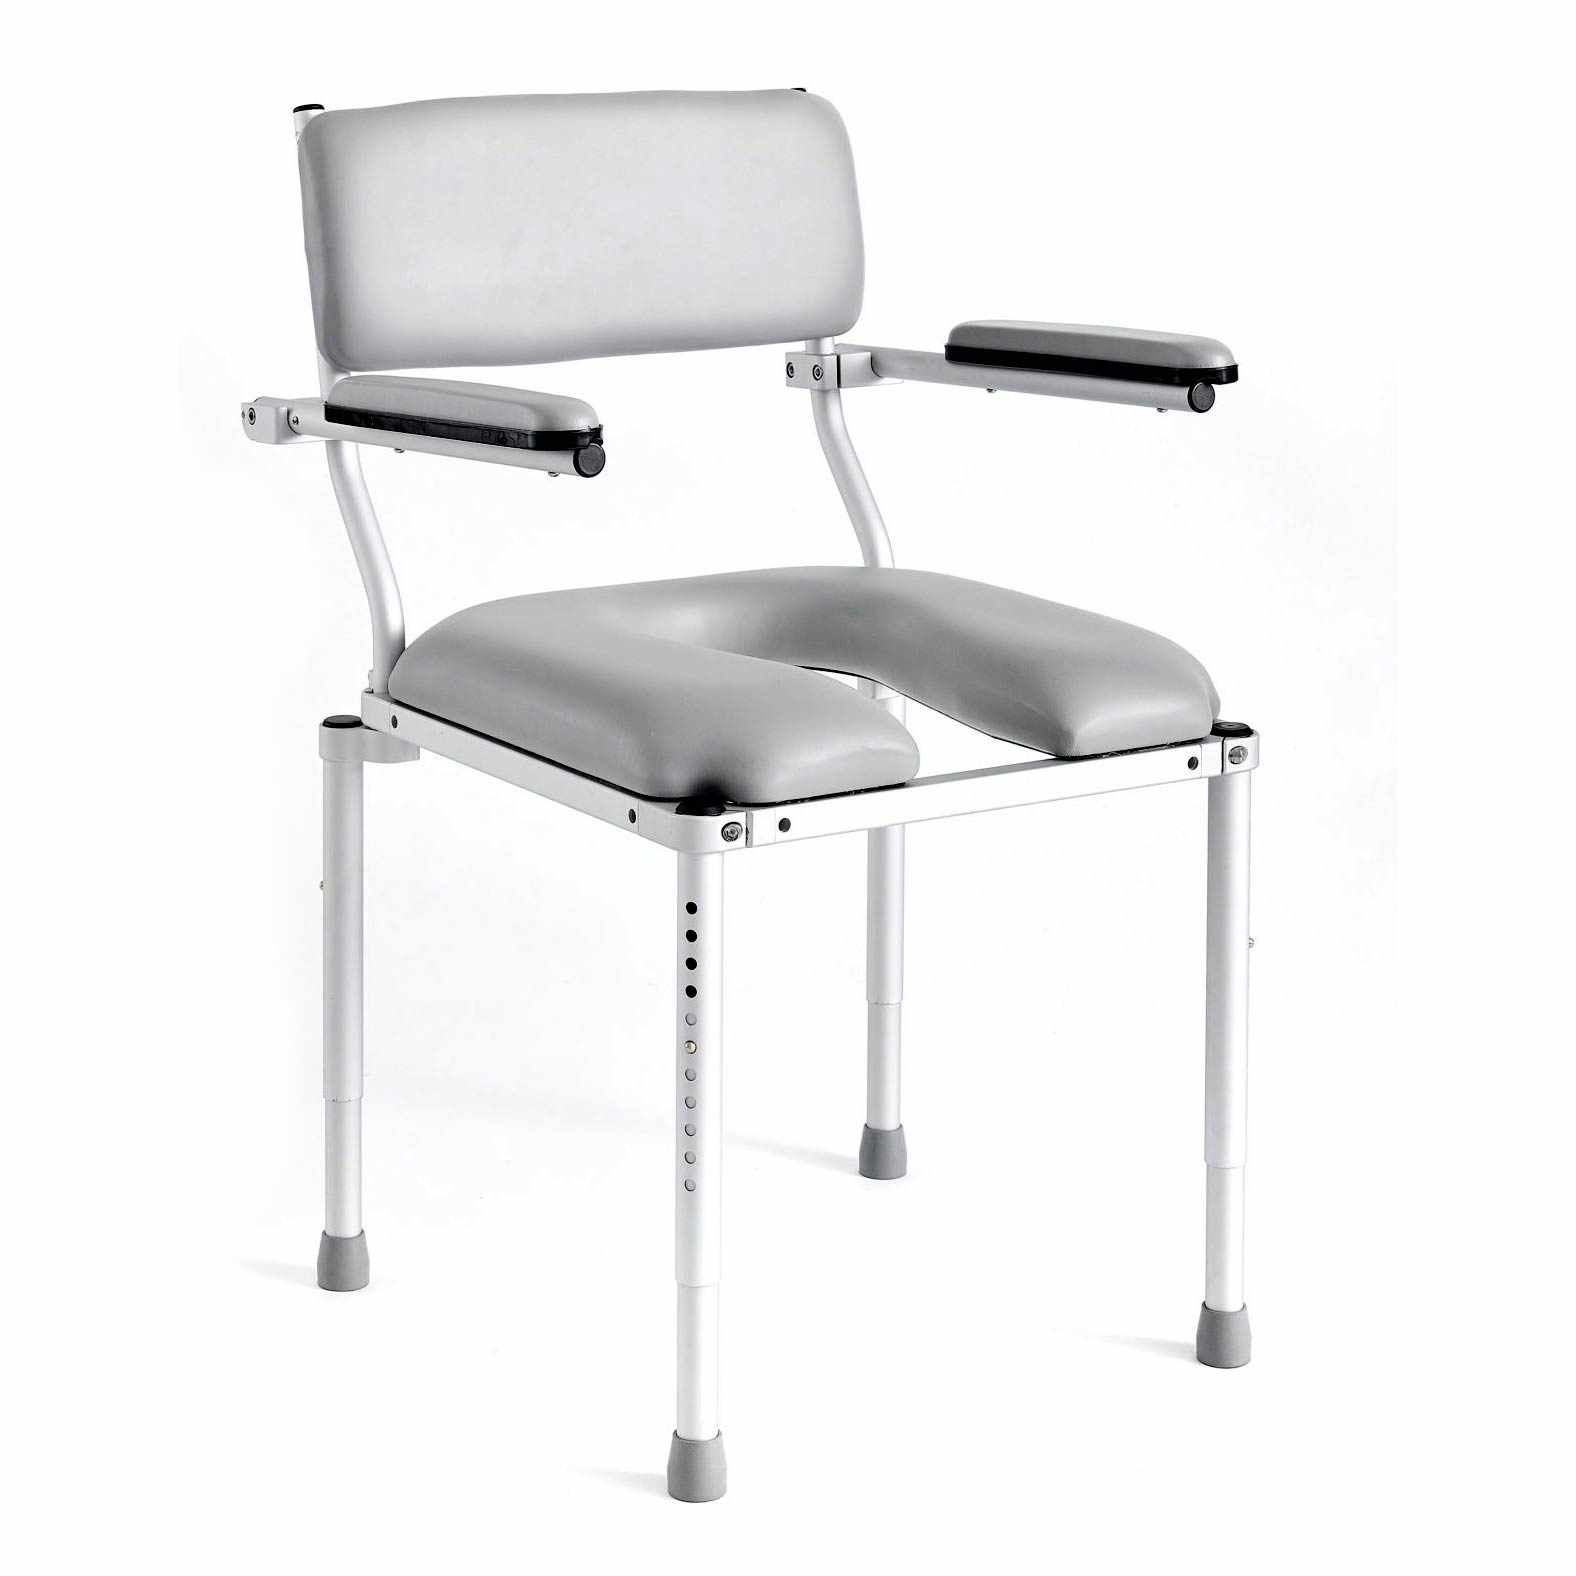 Nuprodx Multichair 3200 Tub And Toilet Chair | Medicaleshop